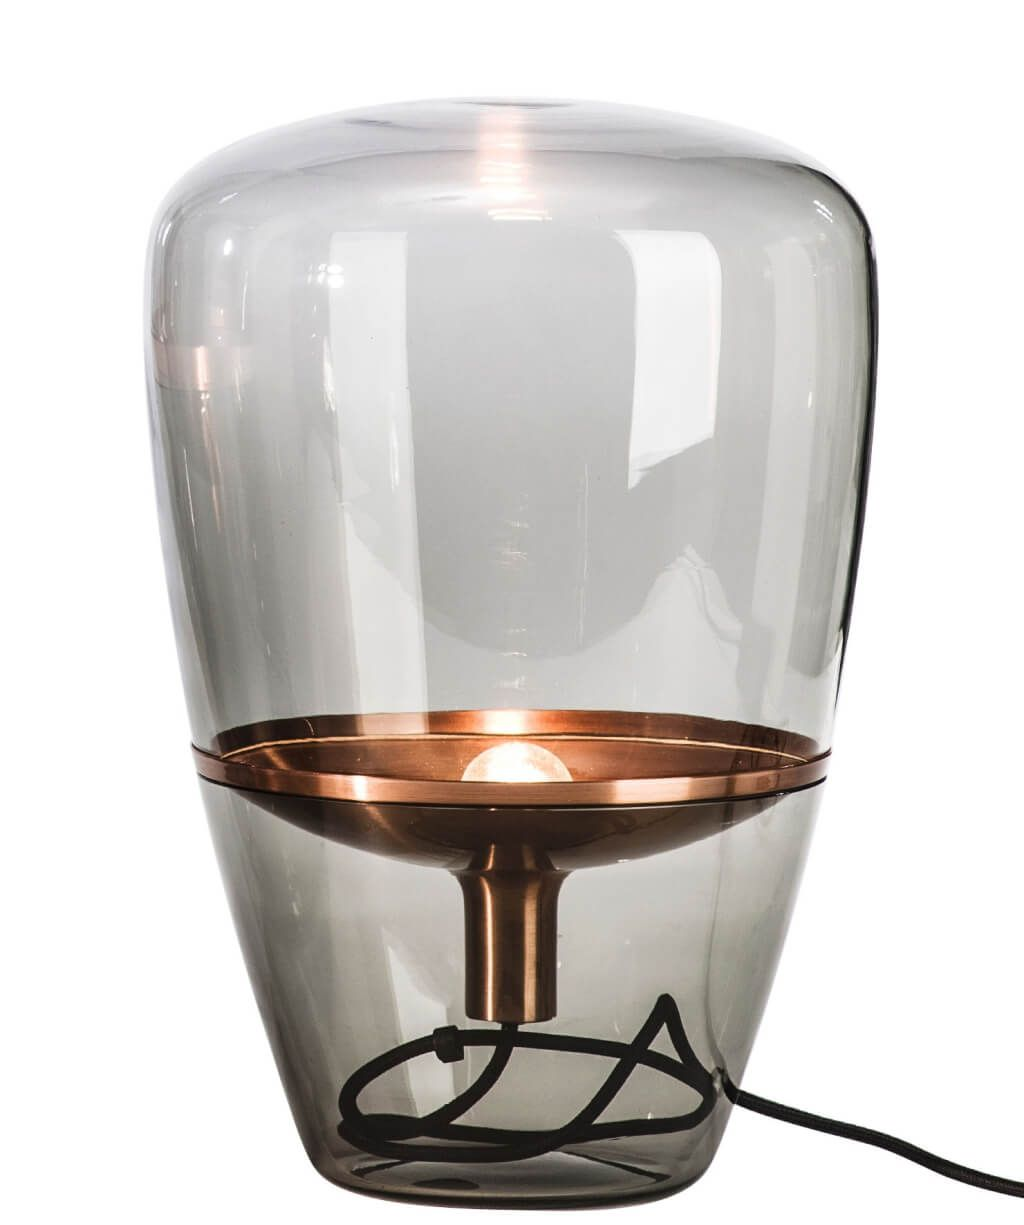 lighting rustic clear glass small table lamp design with inner floating copper fitting top lamps accent screen porch furniture end built pottery barn farmhouse bedside patterned